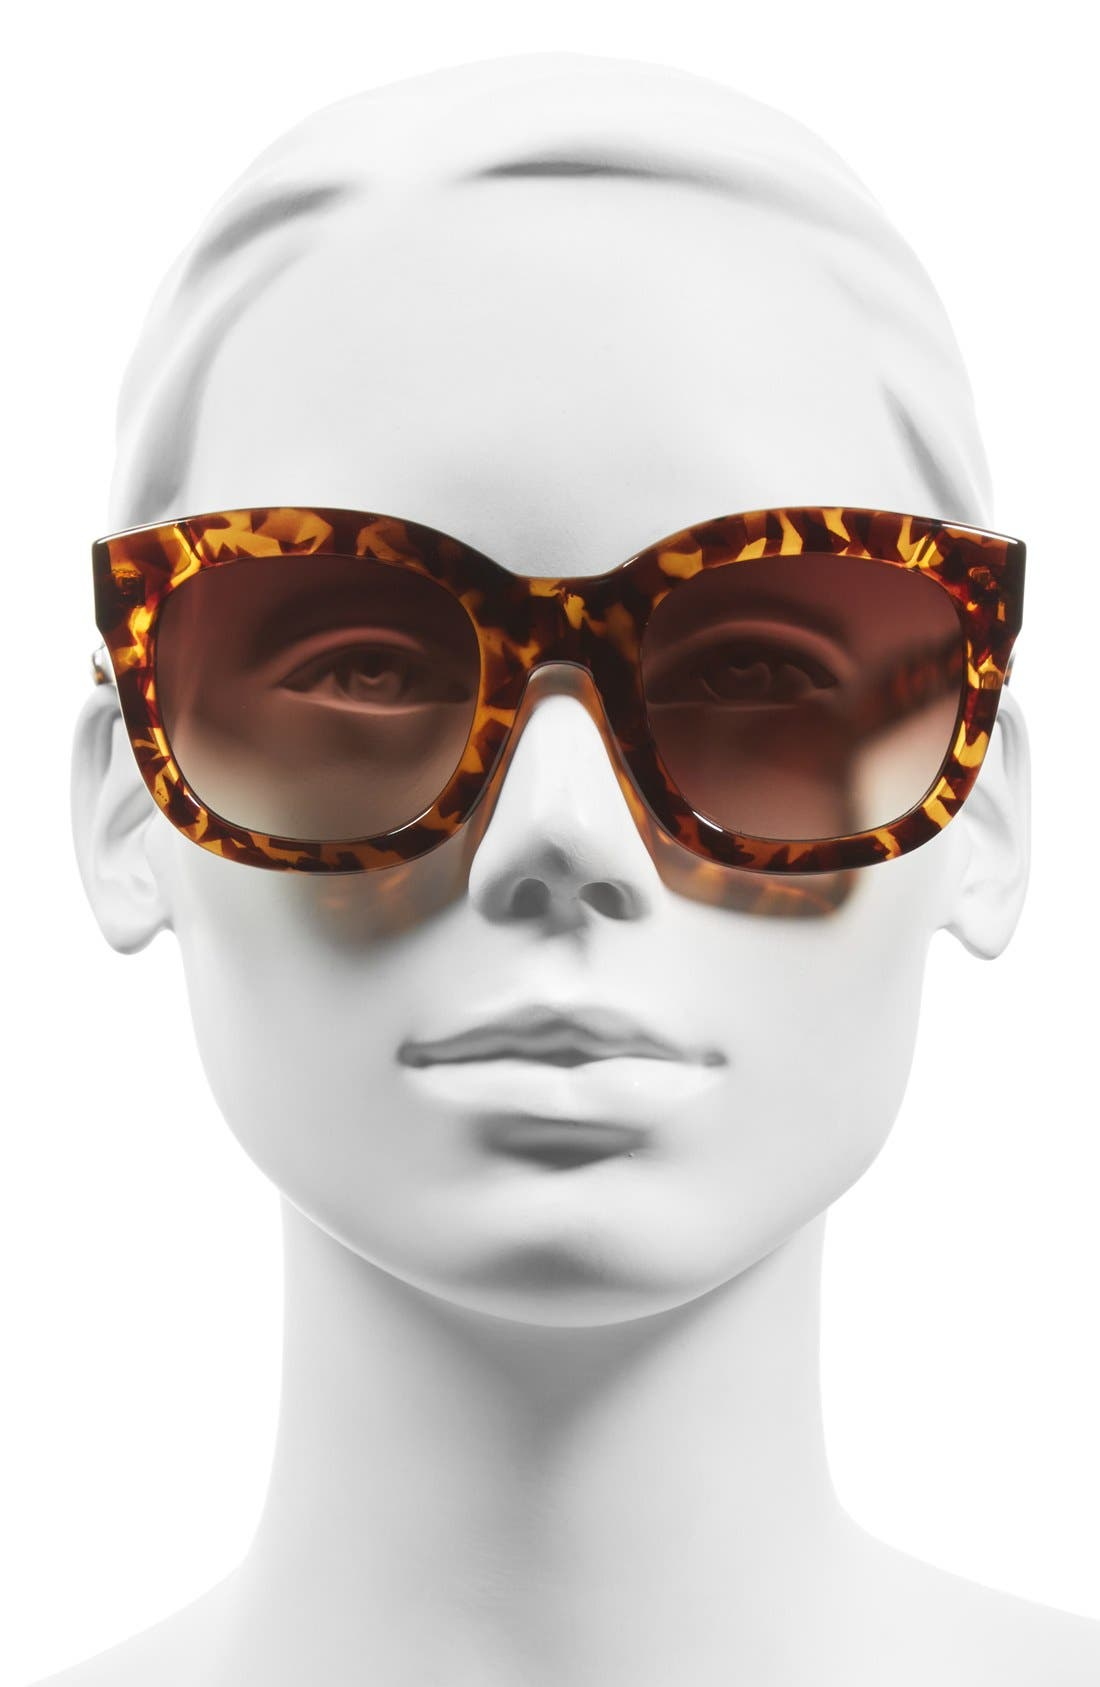 'Feline' 54mm Oversized Cat Eye Sunglasses,                             Alternate thumbnail 2, color,                             Tortoise